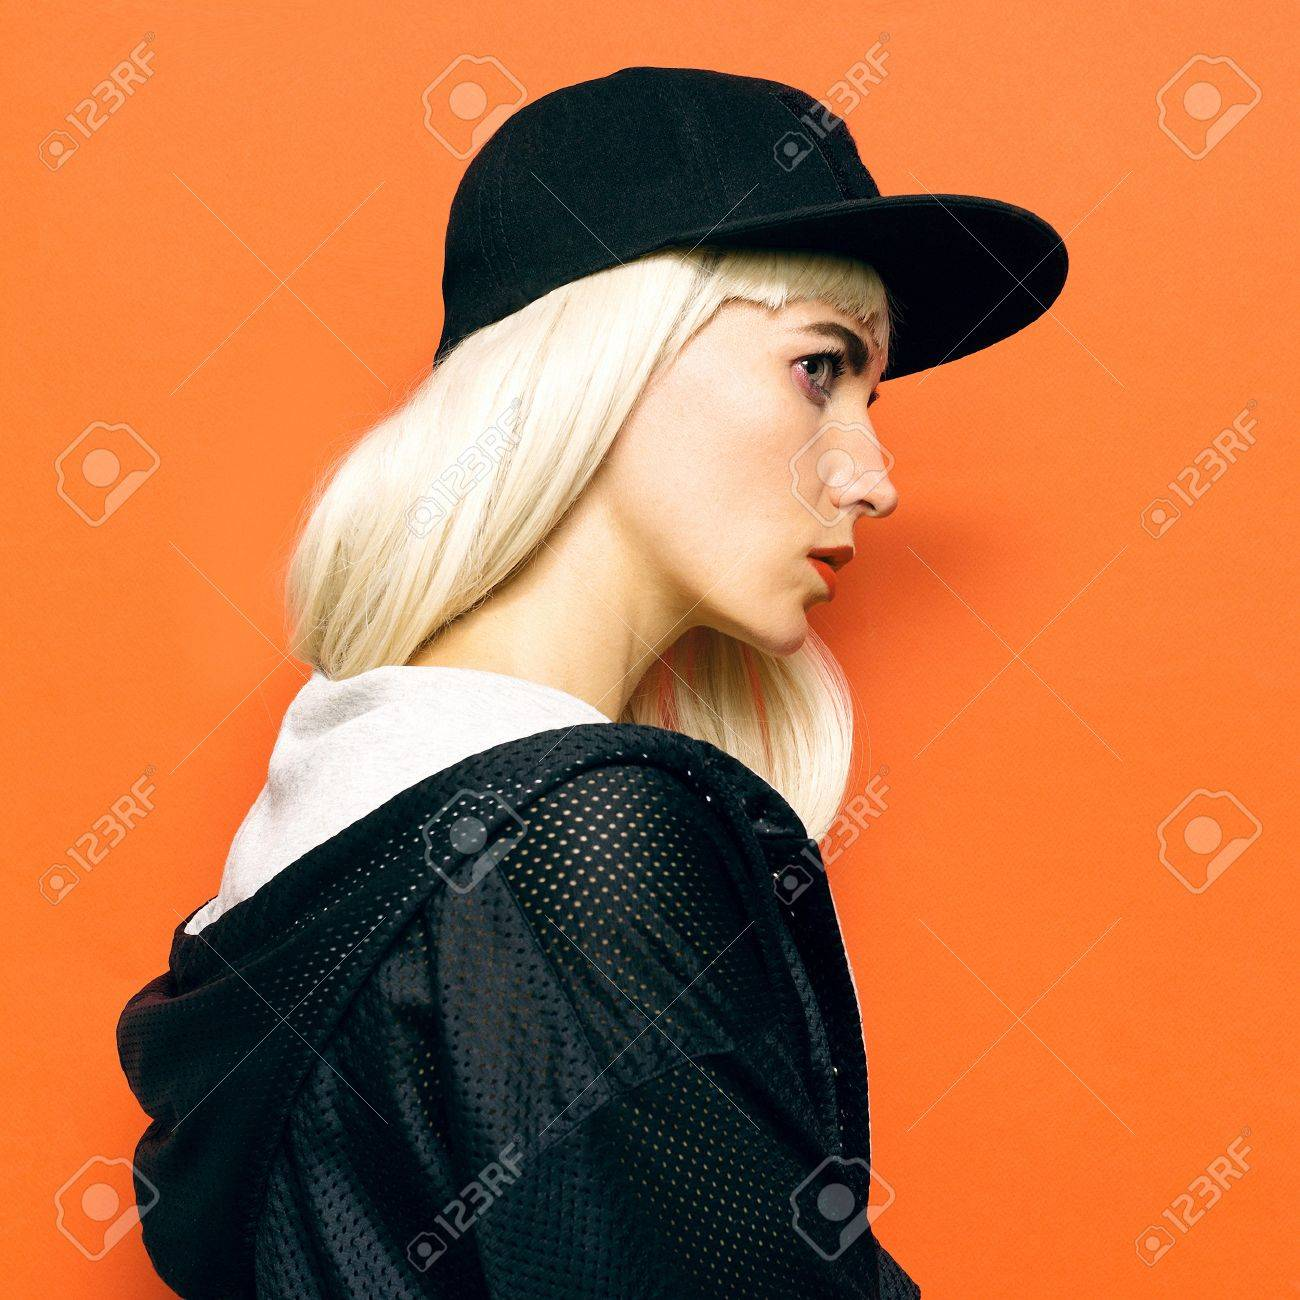 Hip Hop Girl Blonde Cap And Stylish Clothes Urban Style Swag